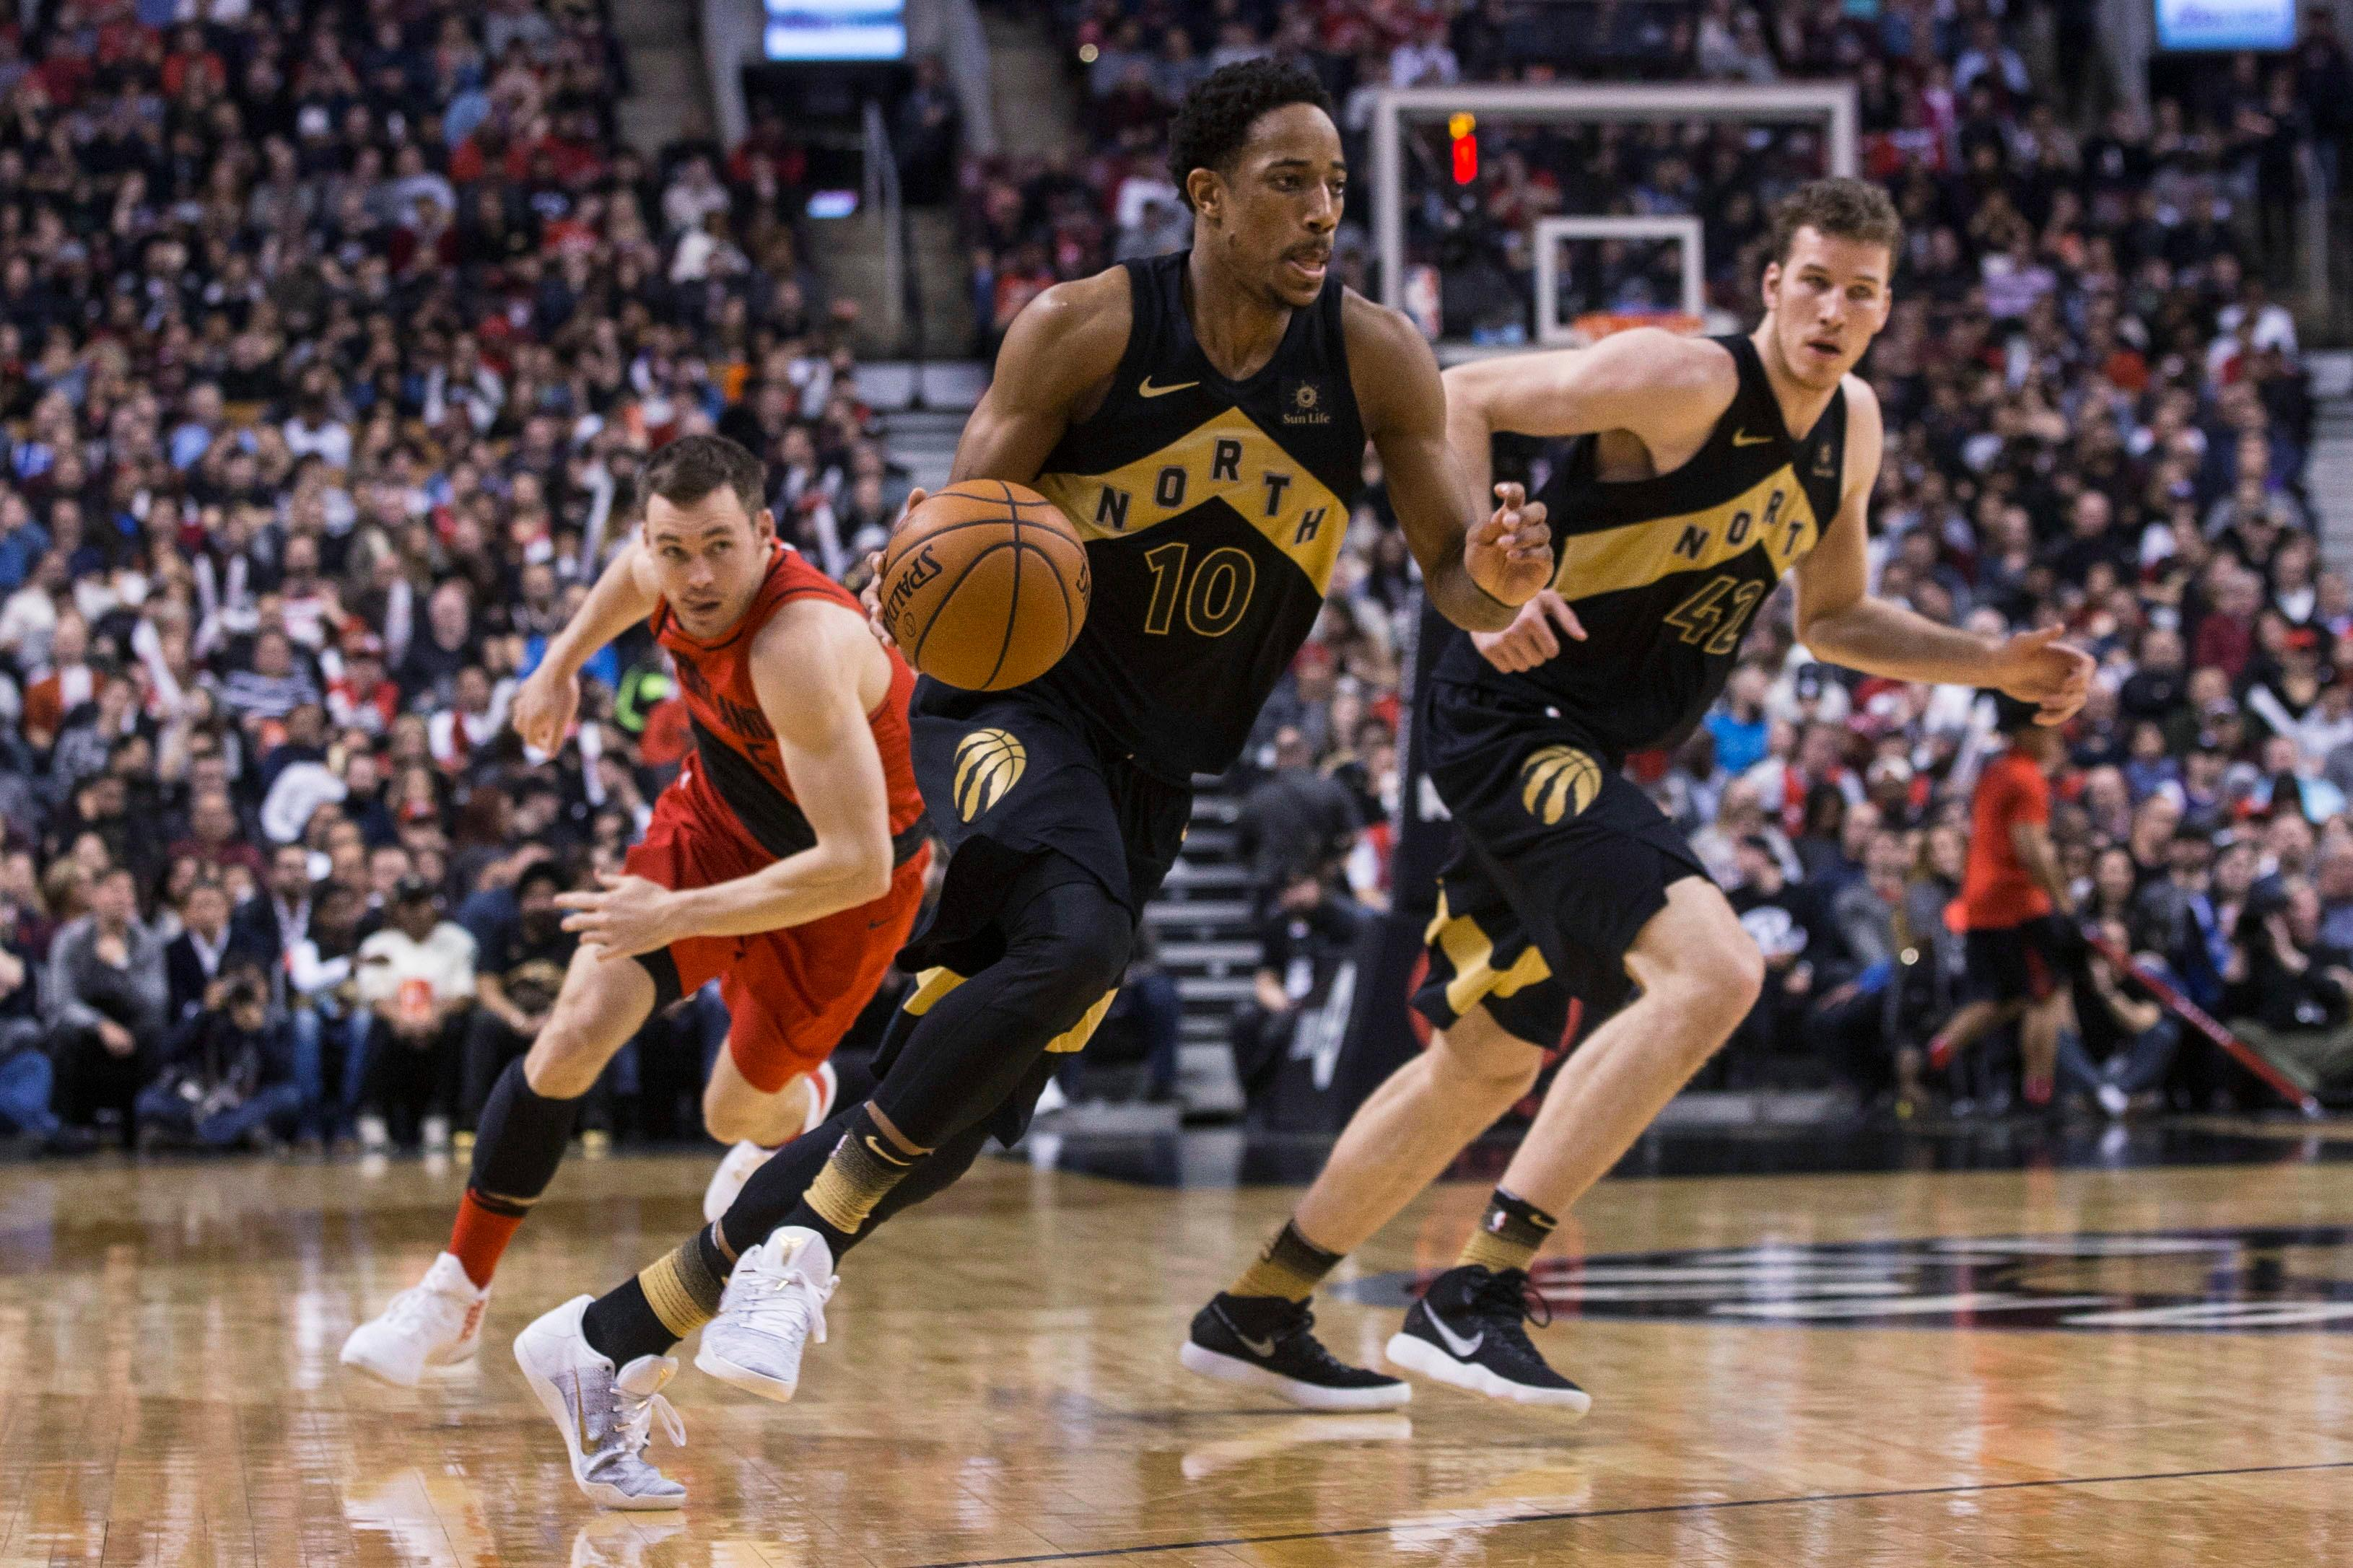 Toronto Raptors' DeMar DeRozan drives past Portland Trail Blazers' Pat Connaughton, left, as Raptors' Jakob Poeltl watches during the second half of an NBA basketball game Friday, Feb. 2, 2018, in Toronto. (Chris Young/The Canadian Press via AP)